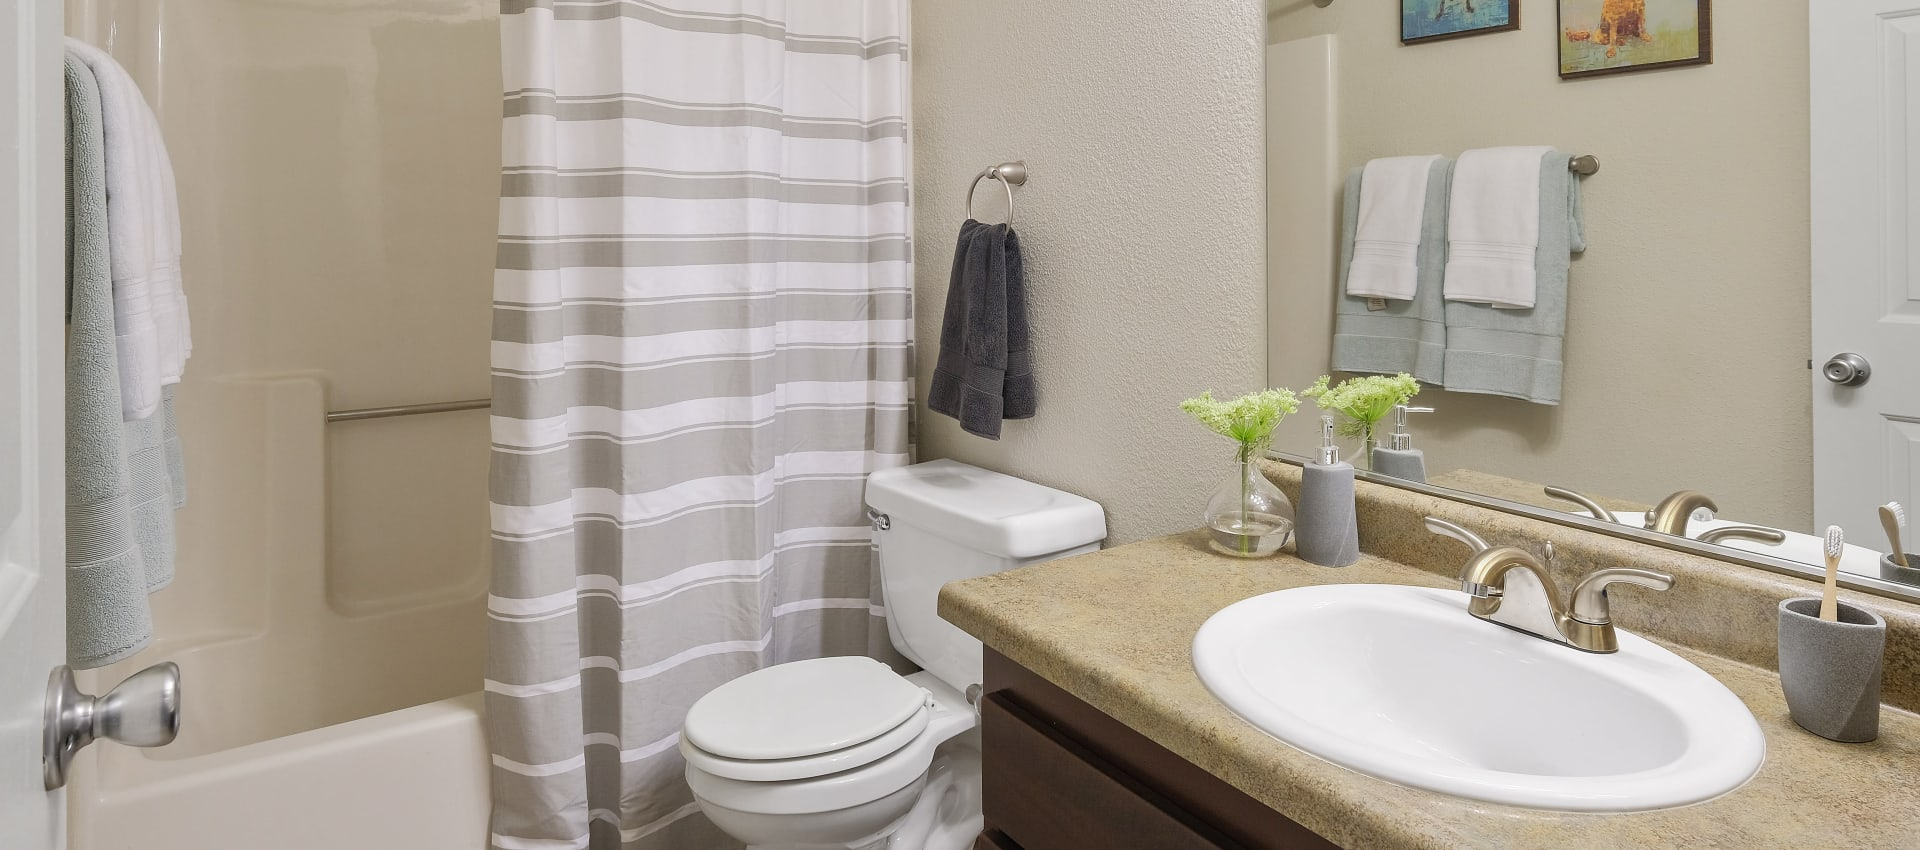 Bathroom at Waterhouse Place in Beaverton, OR